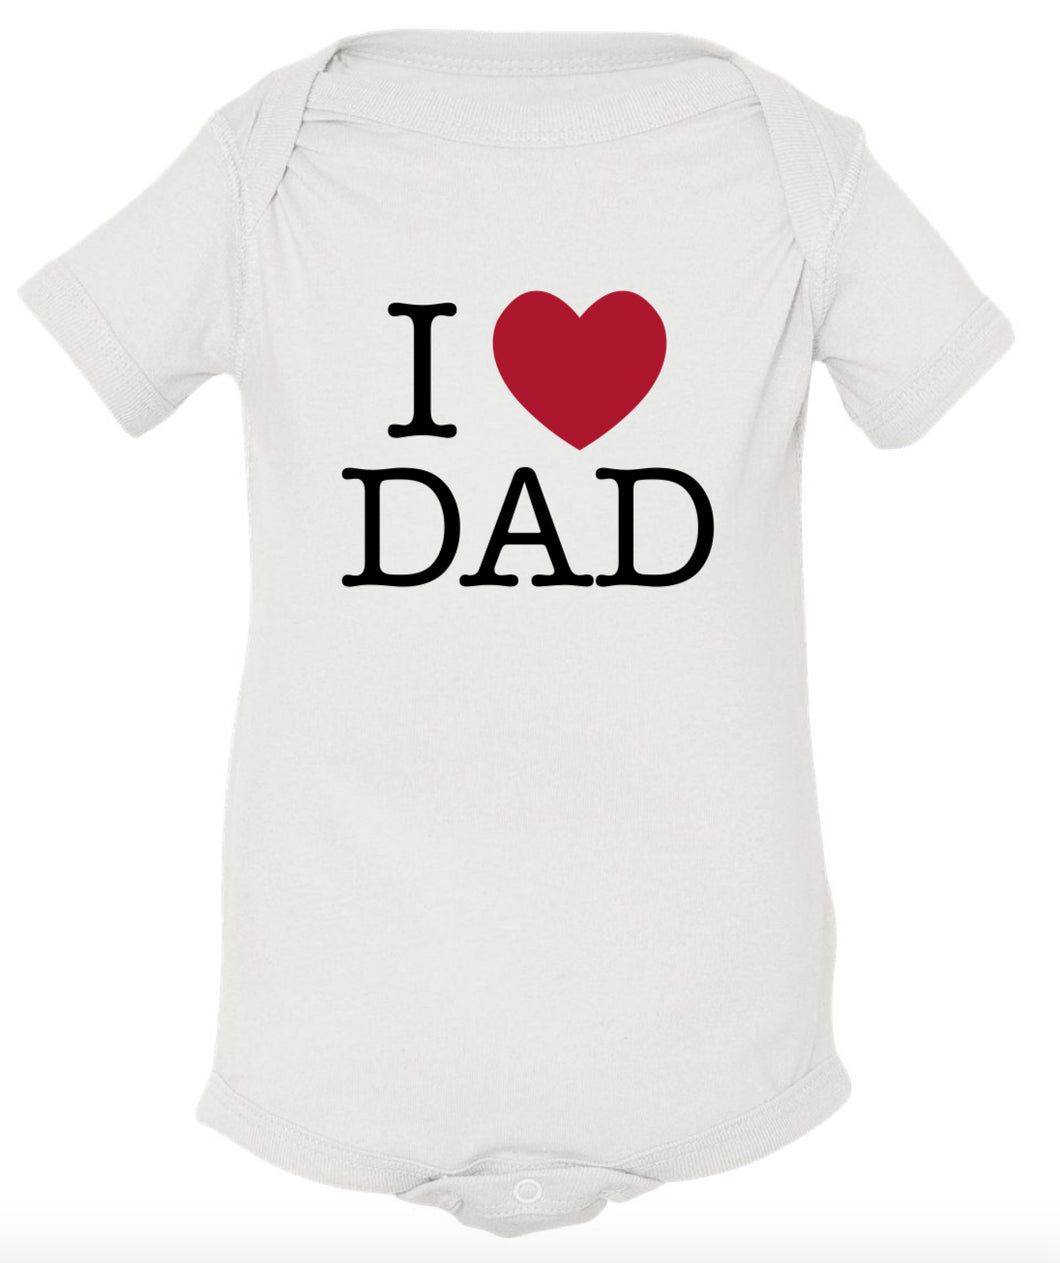 I (heart) Dad Bodysuit